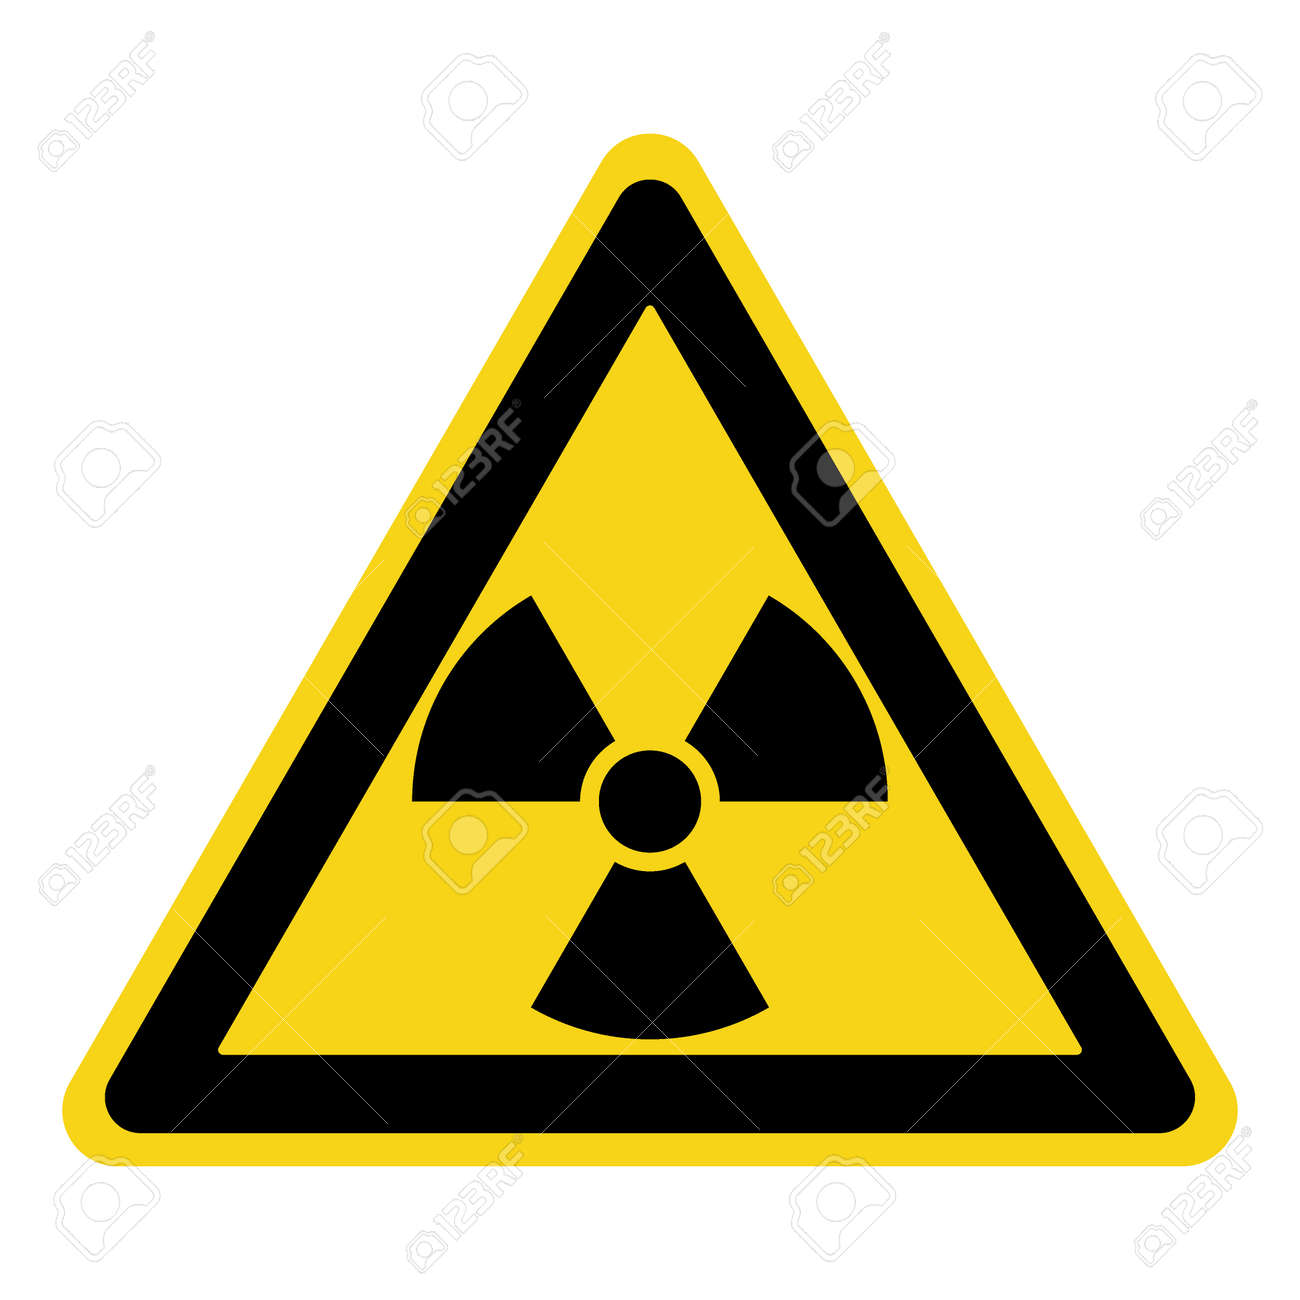 Radiation Hazard Sign Symbol Of Radioactive Threat Alert Black